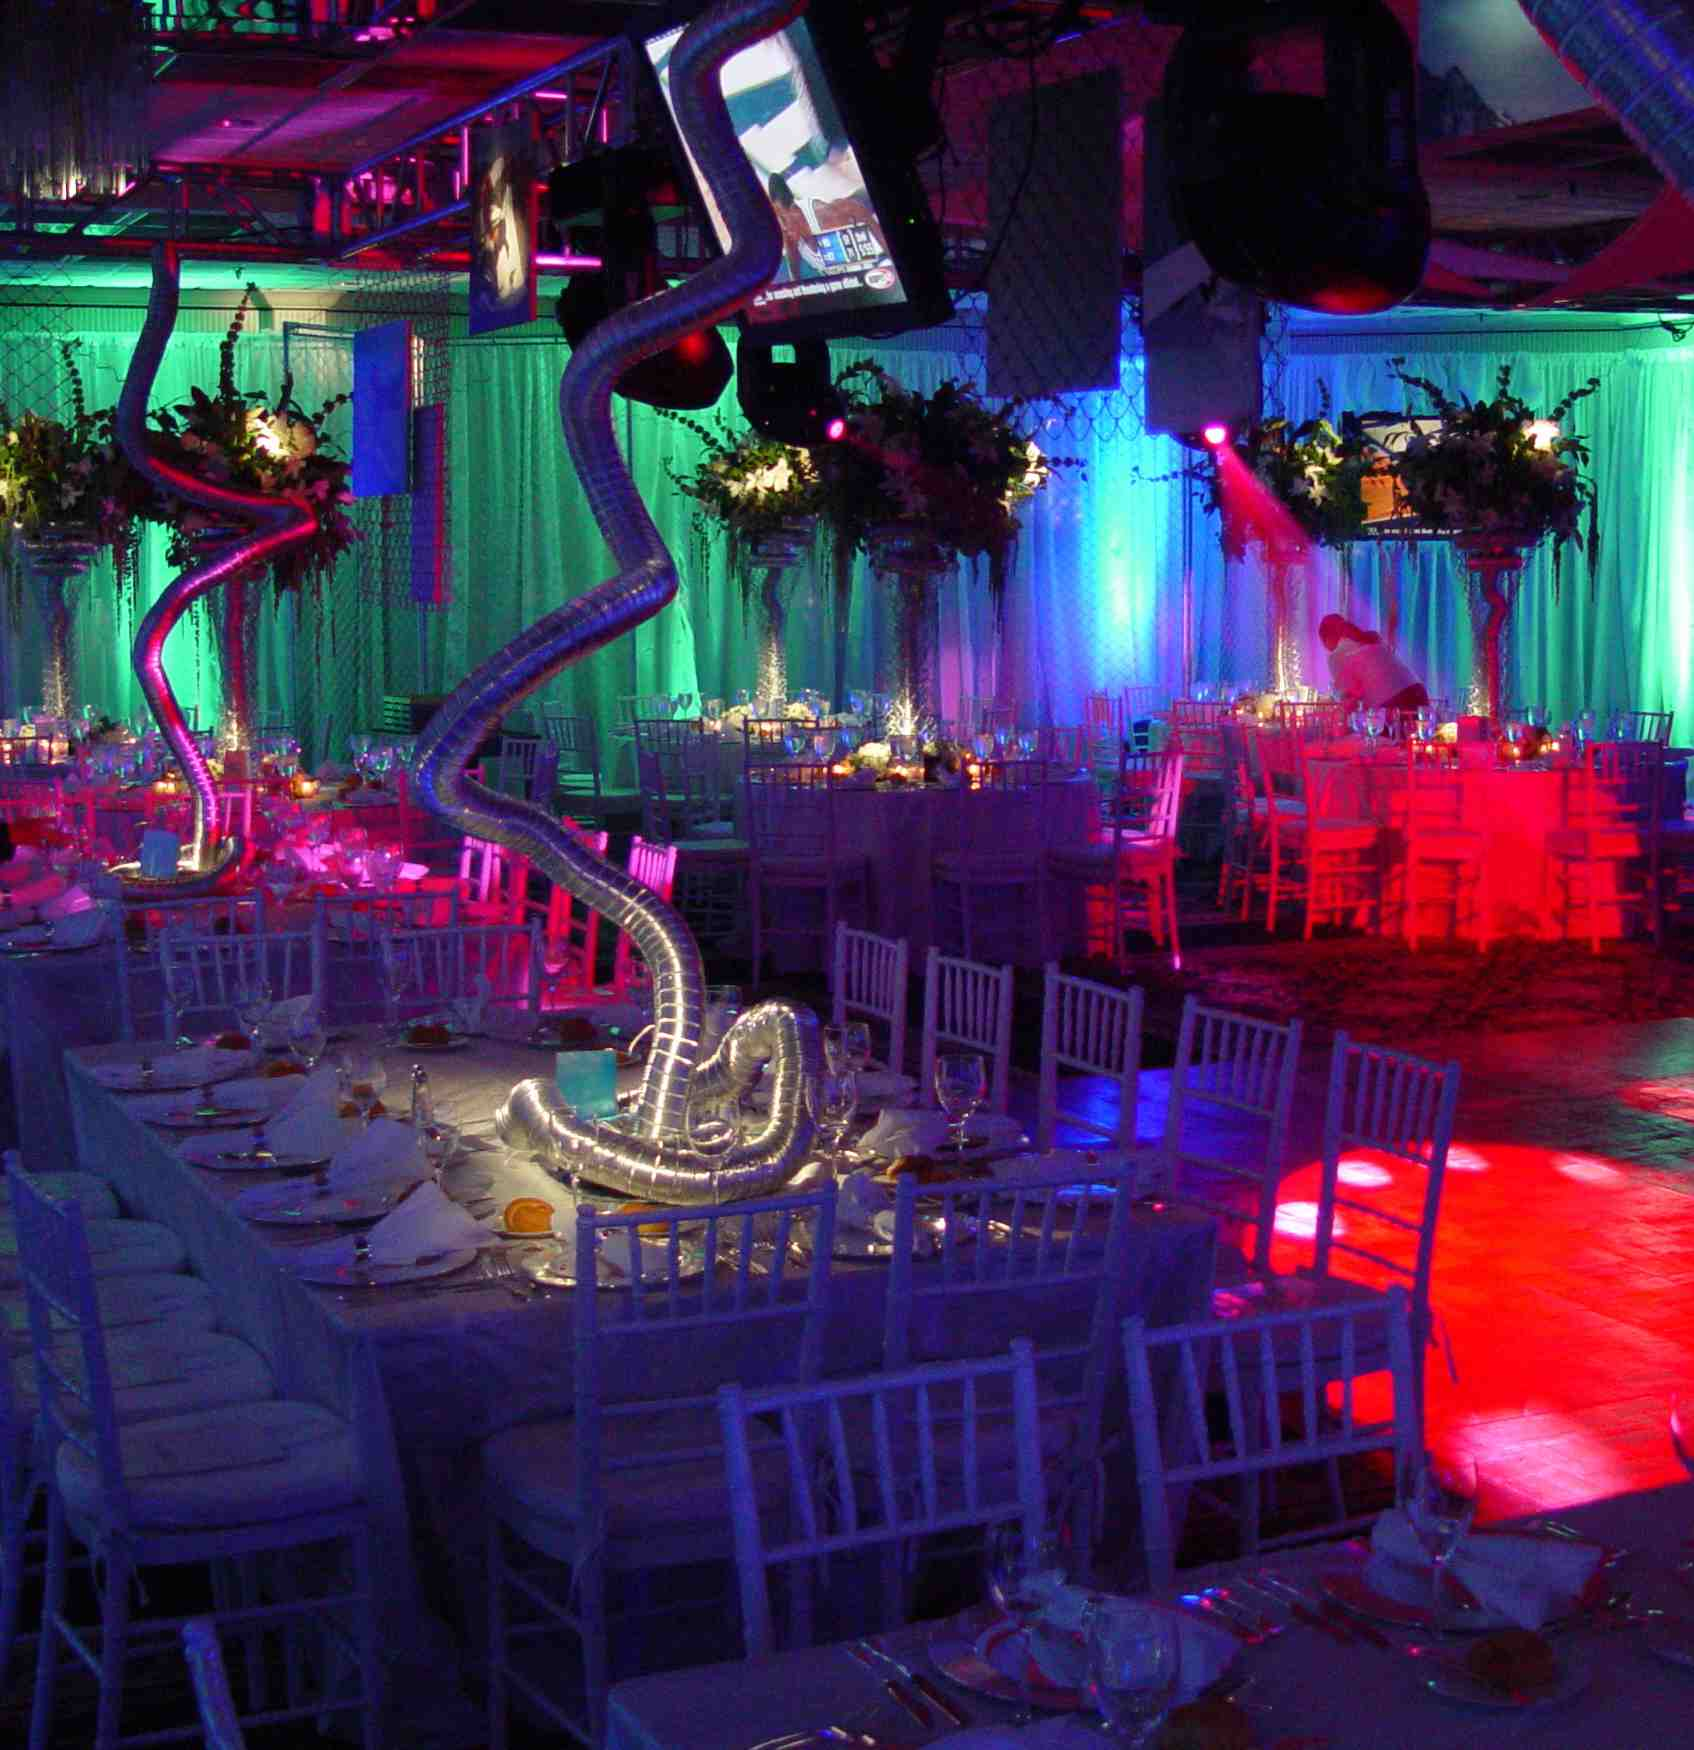 +NJ+NY+PA+bar+mitzvah+bat+mitzvah+decor+design+rental+rentals+decorations+eggostic+events.jpg